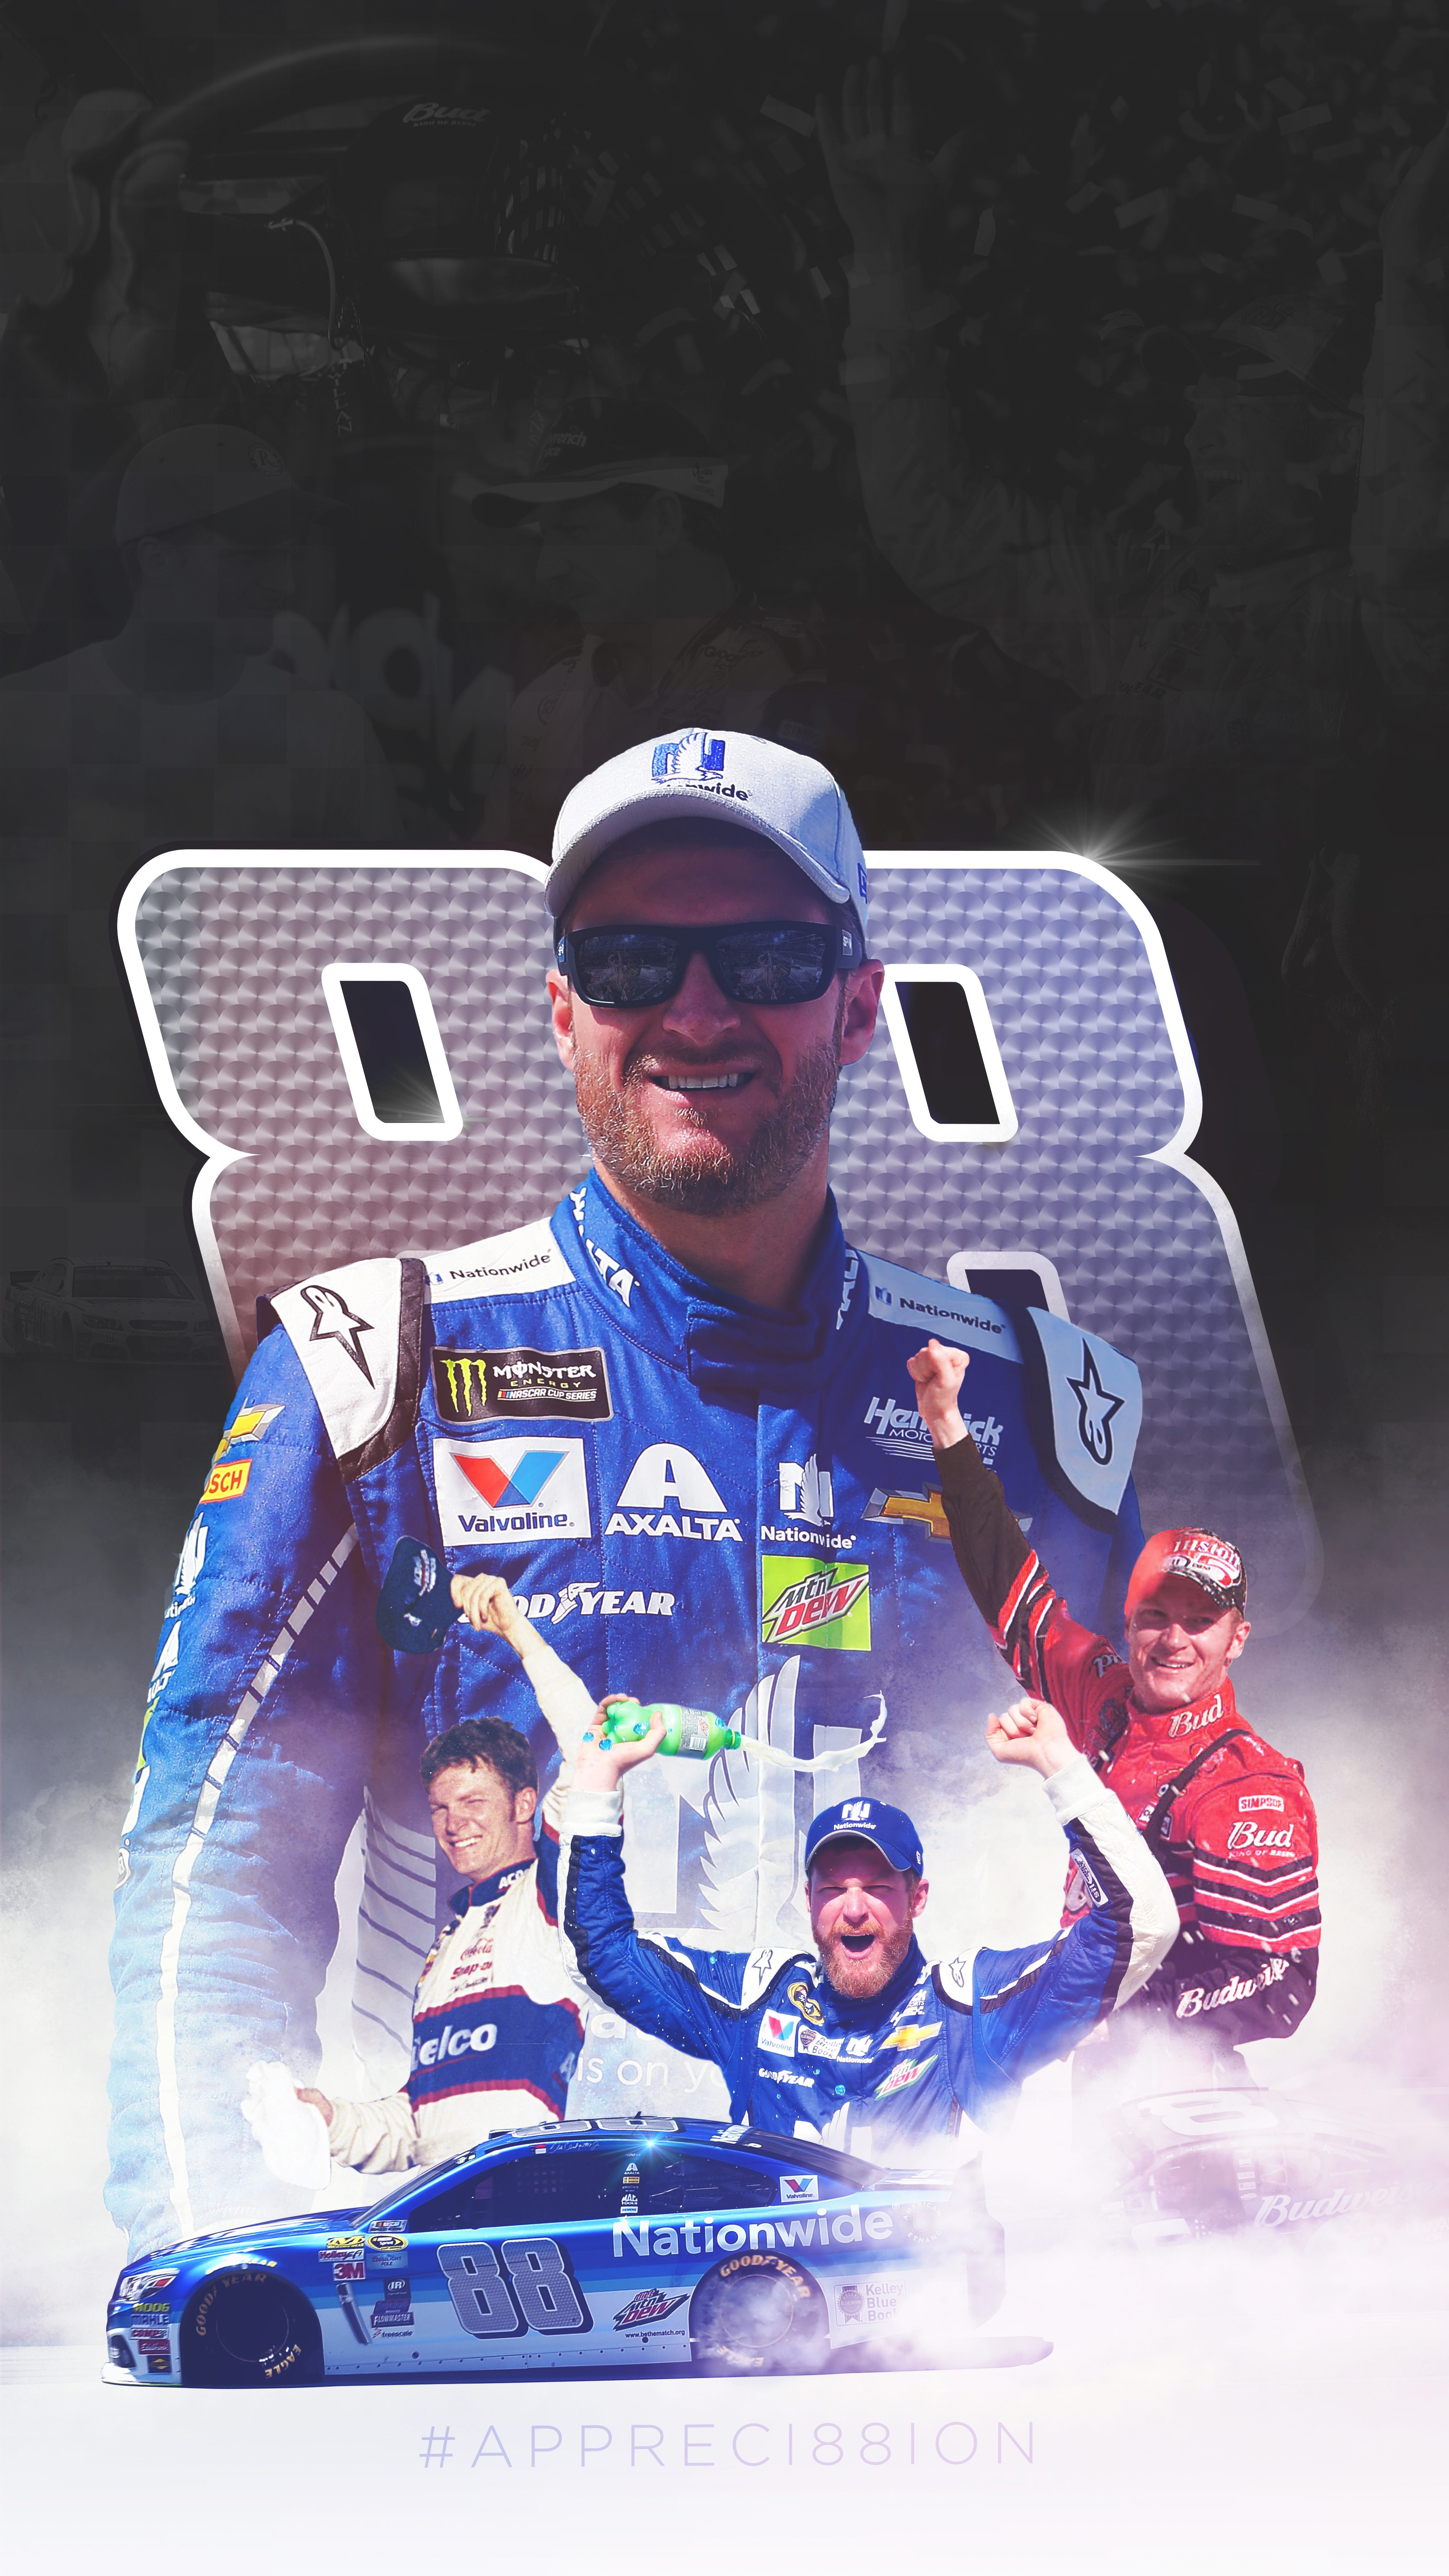 NASCAR Playoffs wallpapers, home screens available now